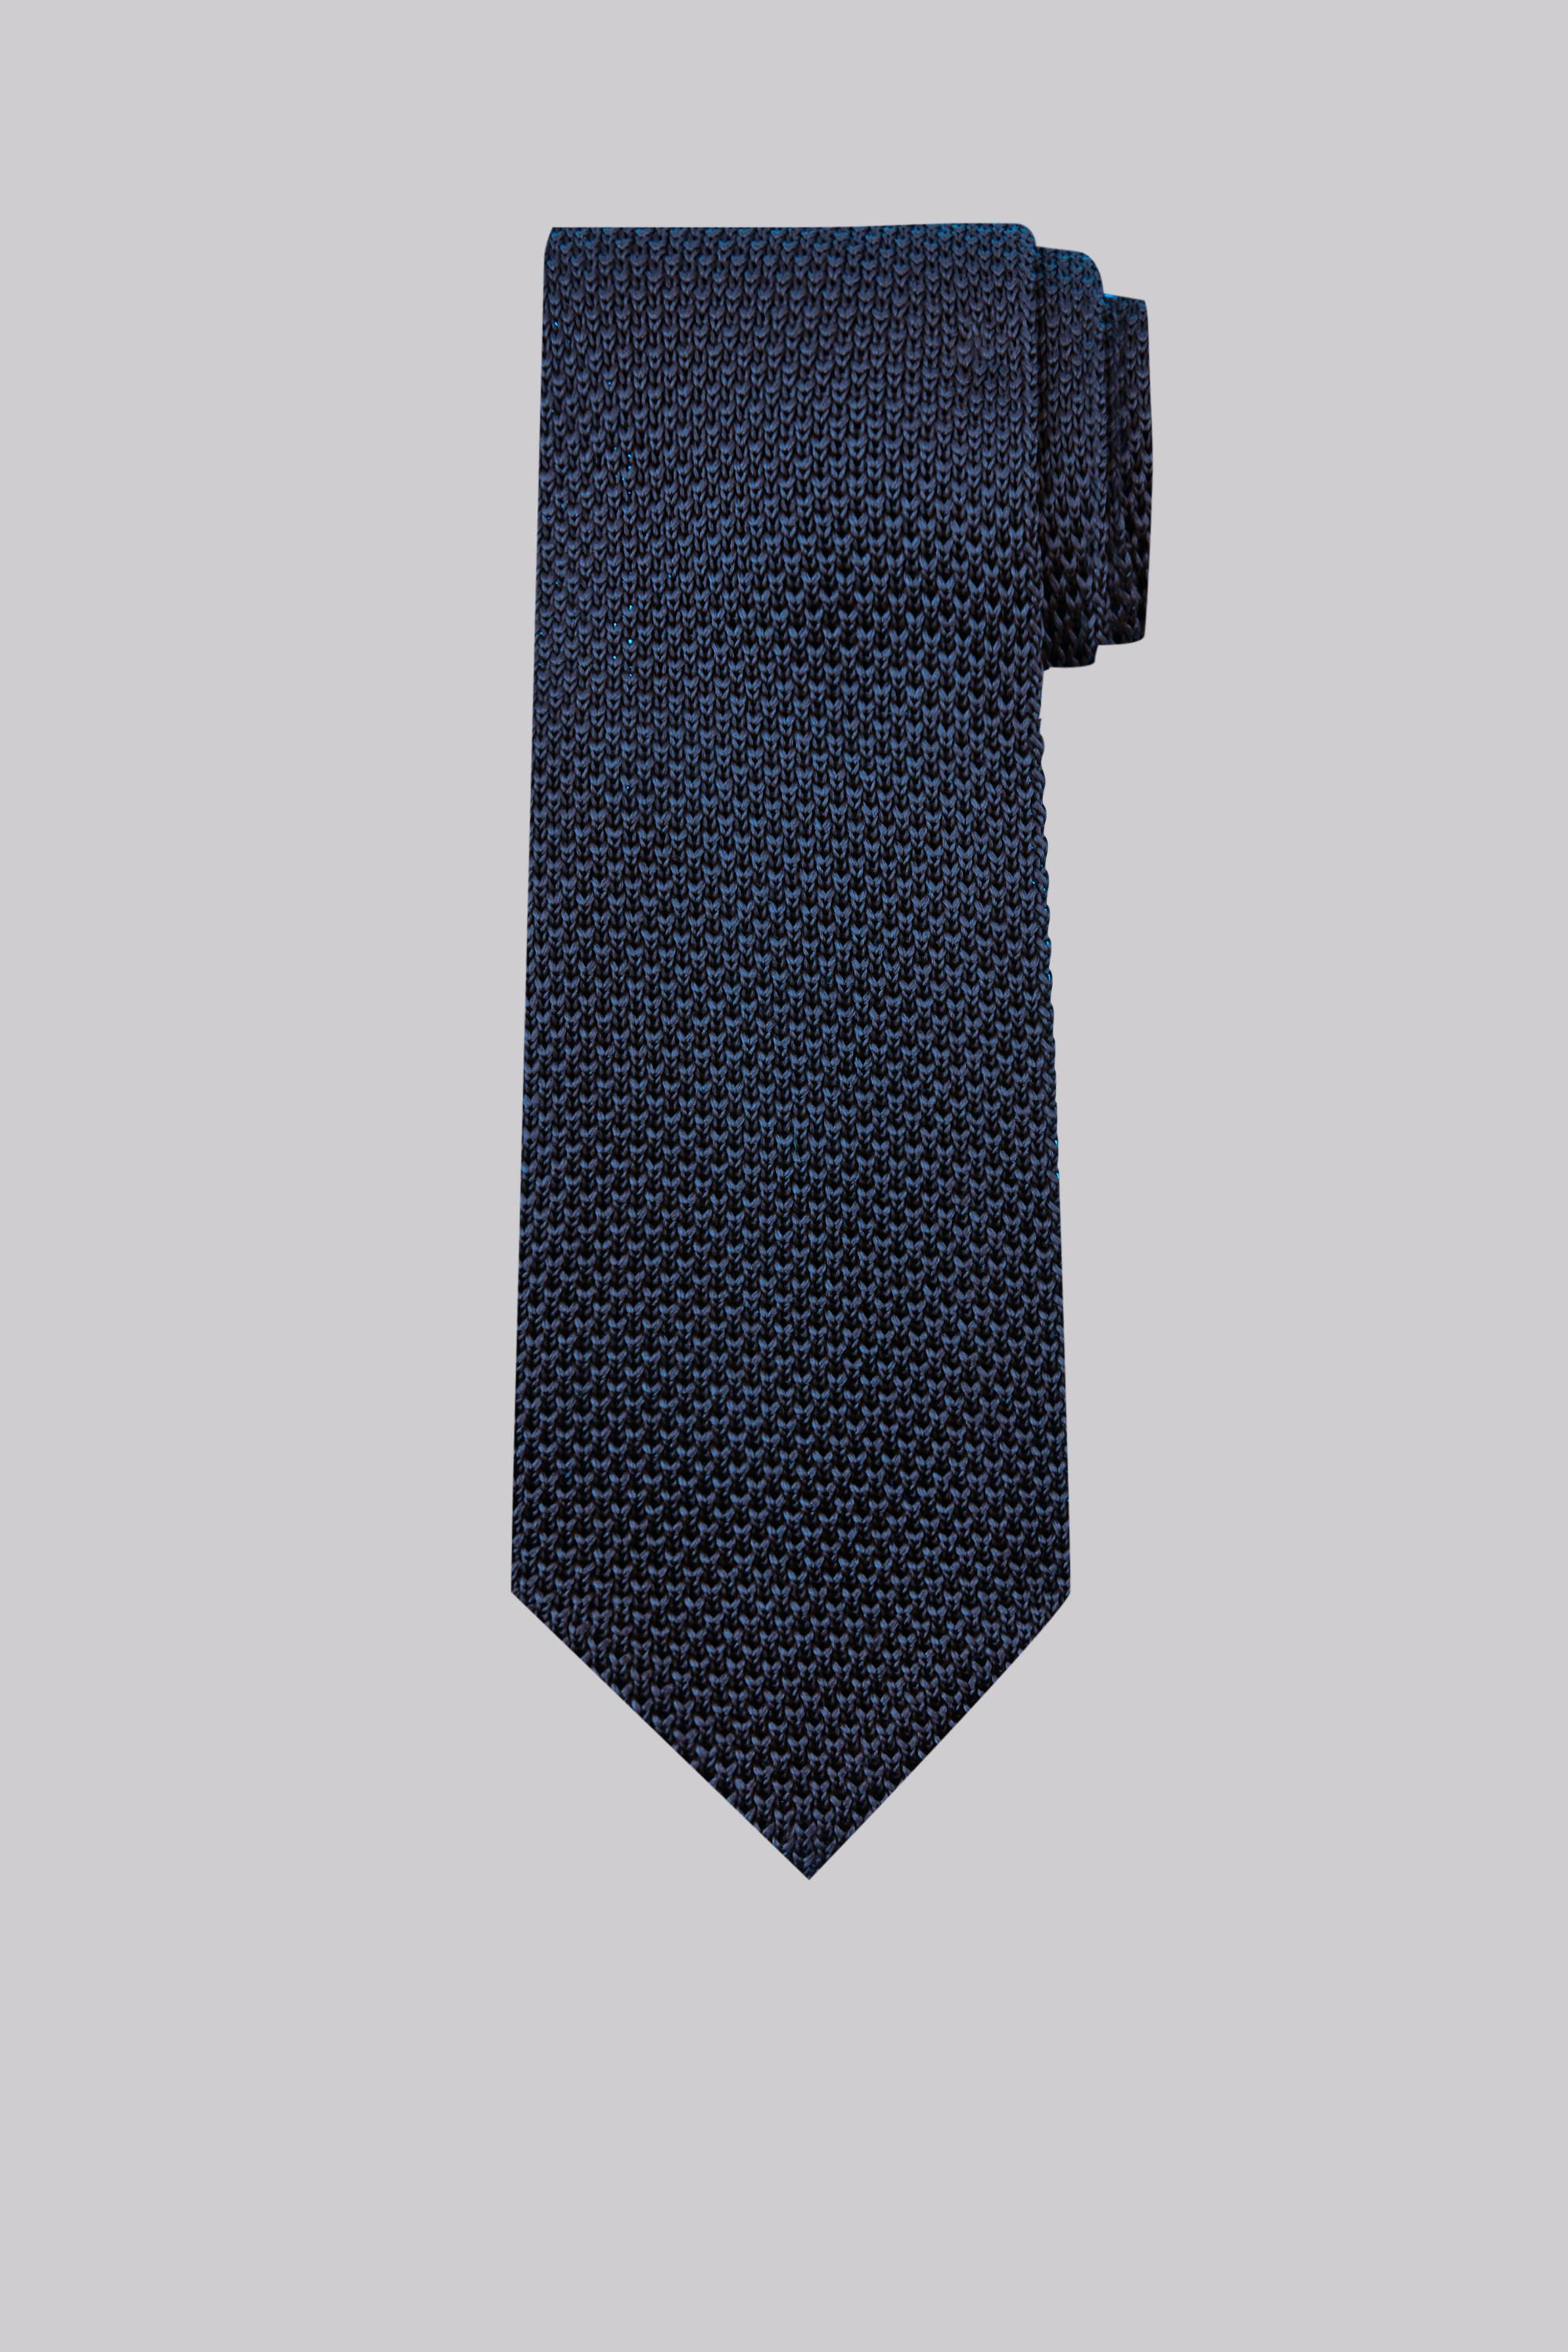 Moss Bros Moss 1851 Navy Knitted Silk Tie